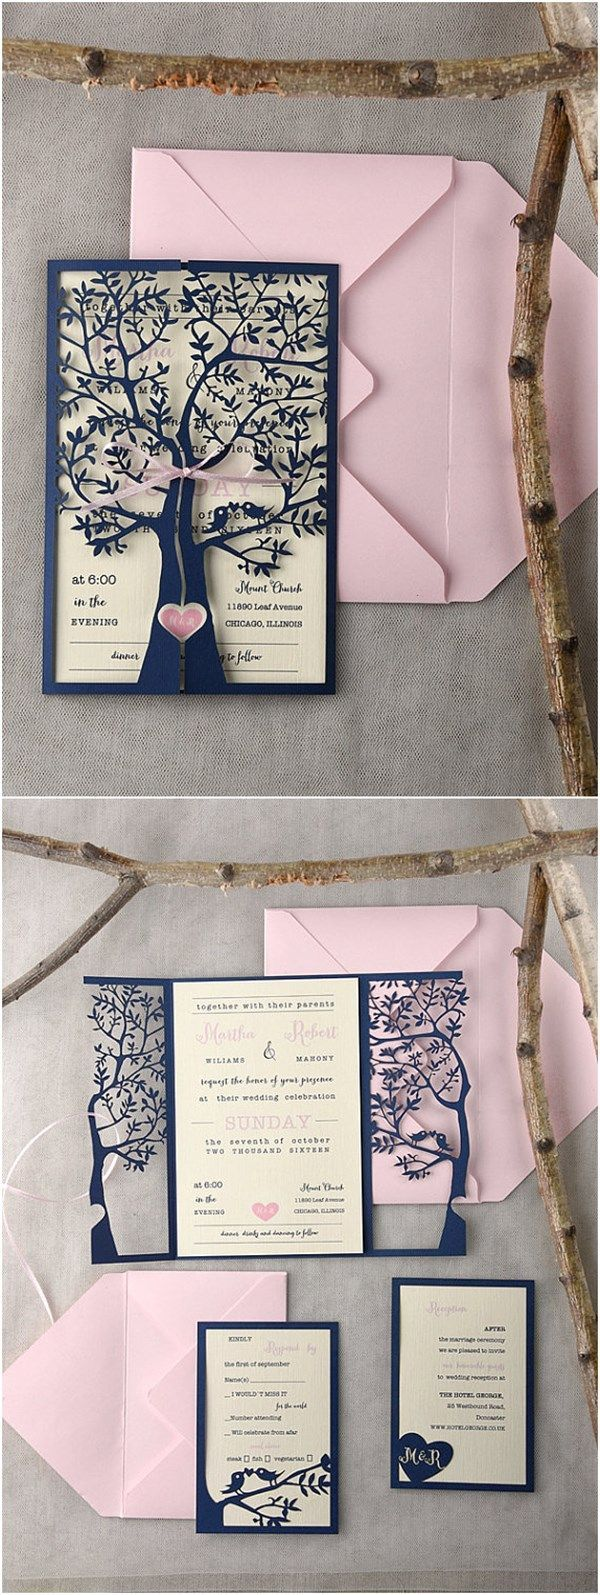 Invitaciones boda hermosos/rustic-wedding-invitations/